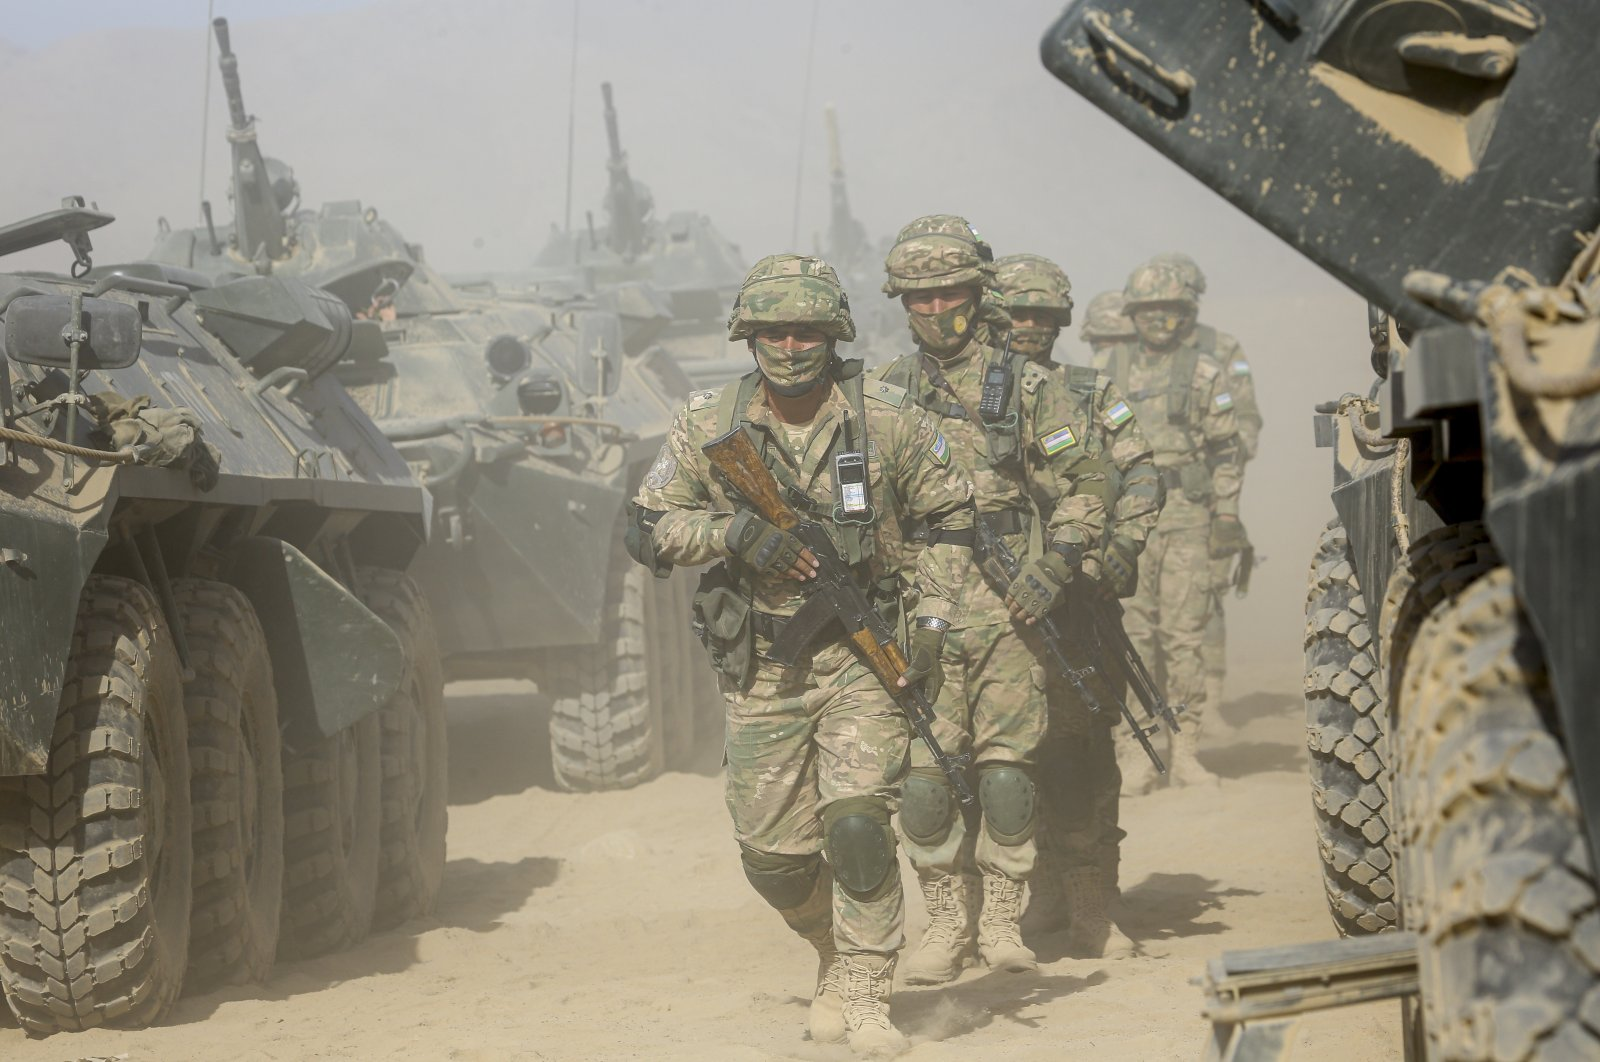 Uzbekistan's troops attend joint military drills with soldiers from Russia and Tajikistan at Harb-Maidon firing range about 20 kilometers (about 12 miles) north of the Tajik border with Afghanistan, in Tajikistan, Aug. 10, 2021. (AP Photo)